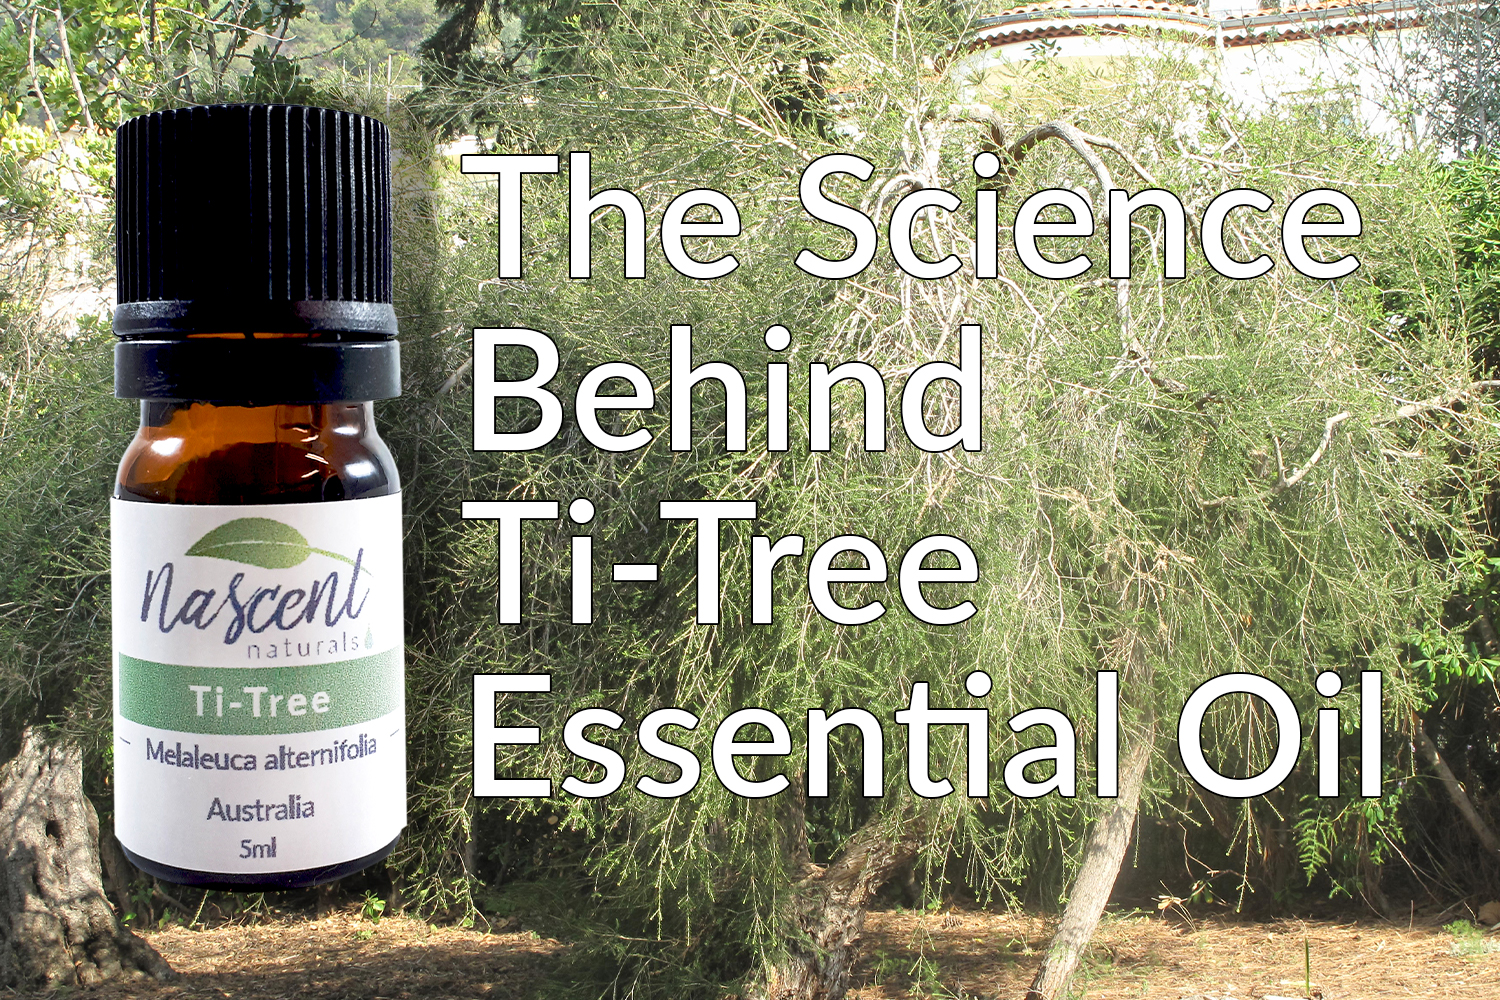 A bottle of Nascent Naturals Ti-Tree essential oil in front of a Melaleuca alternifolia tree. There is white text on the image that says 'The Science Behind Ti-Tree Essential Oil'